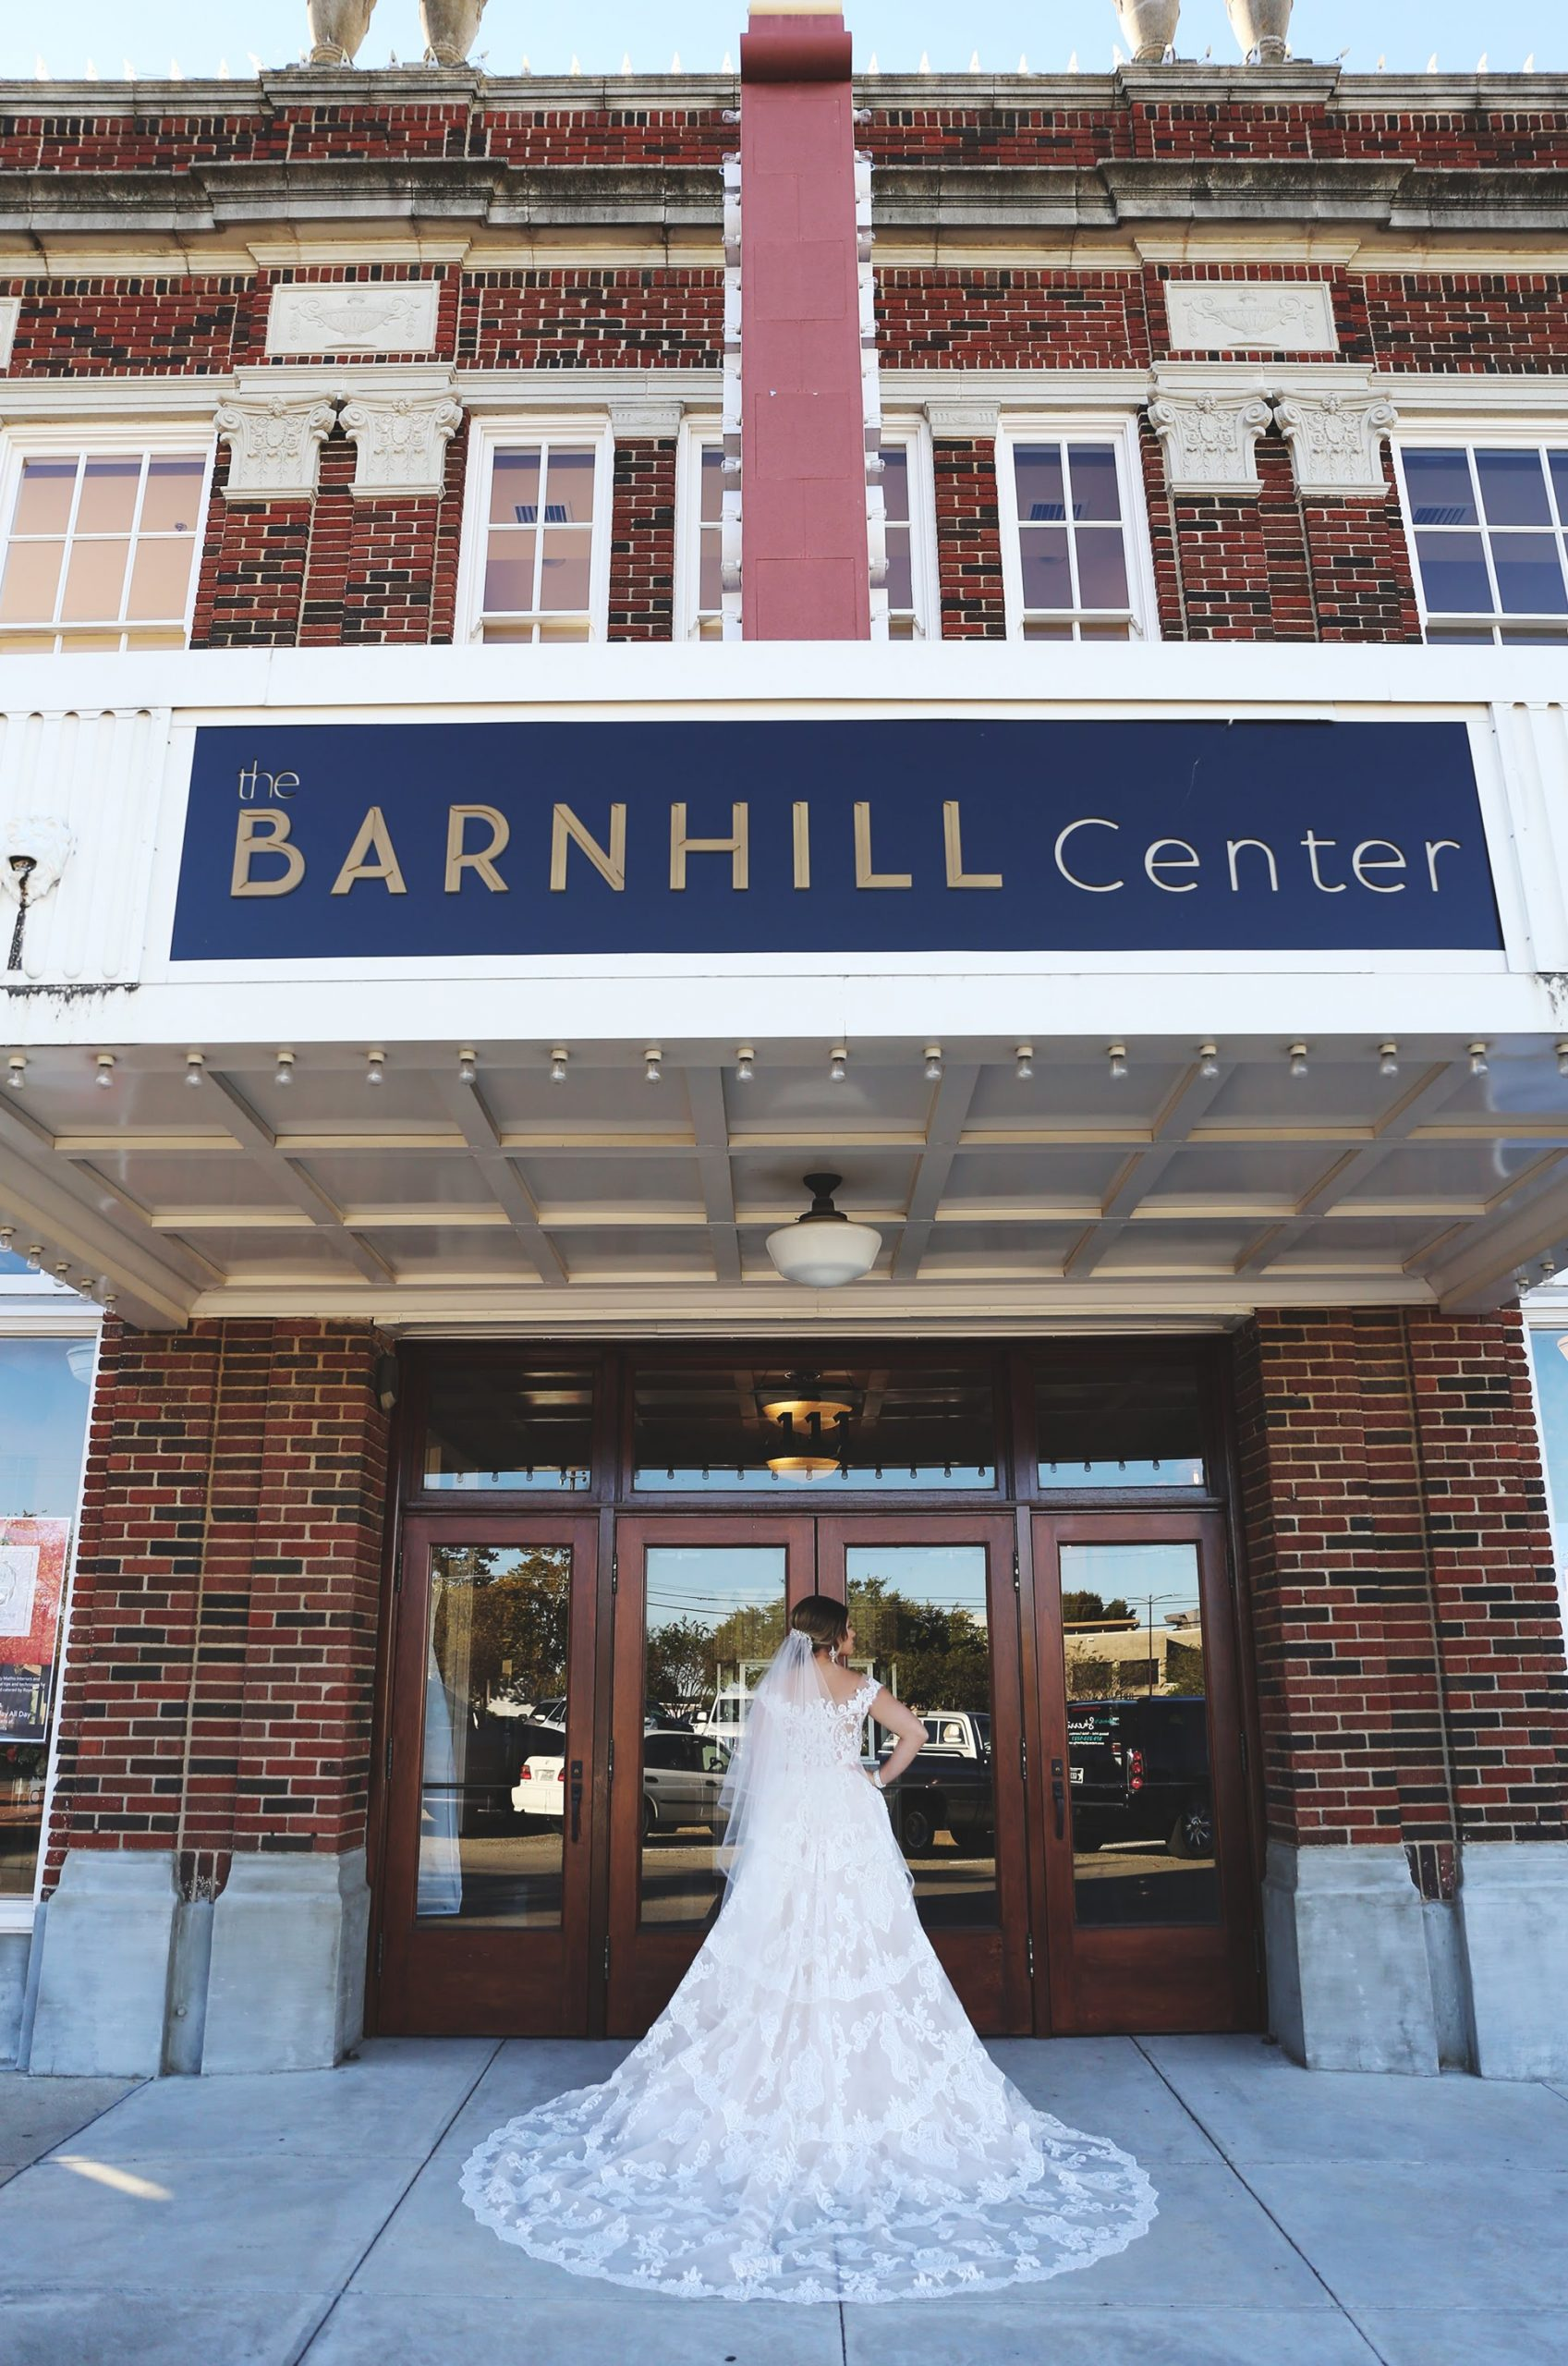 A bride in a white wedding dress stands underneath the exterior awning of The Barnhill Center entryway.